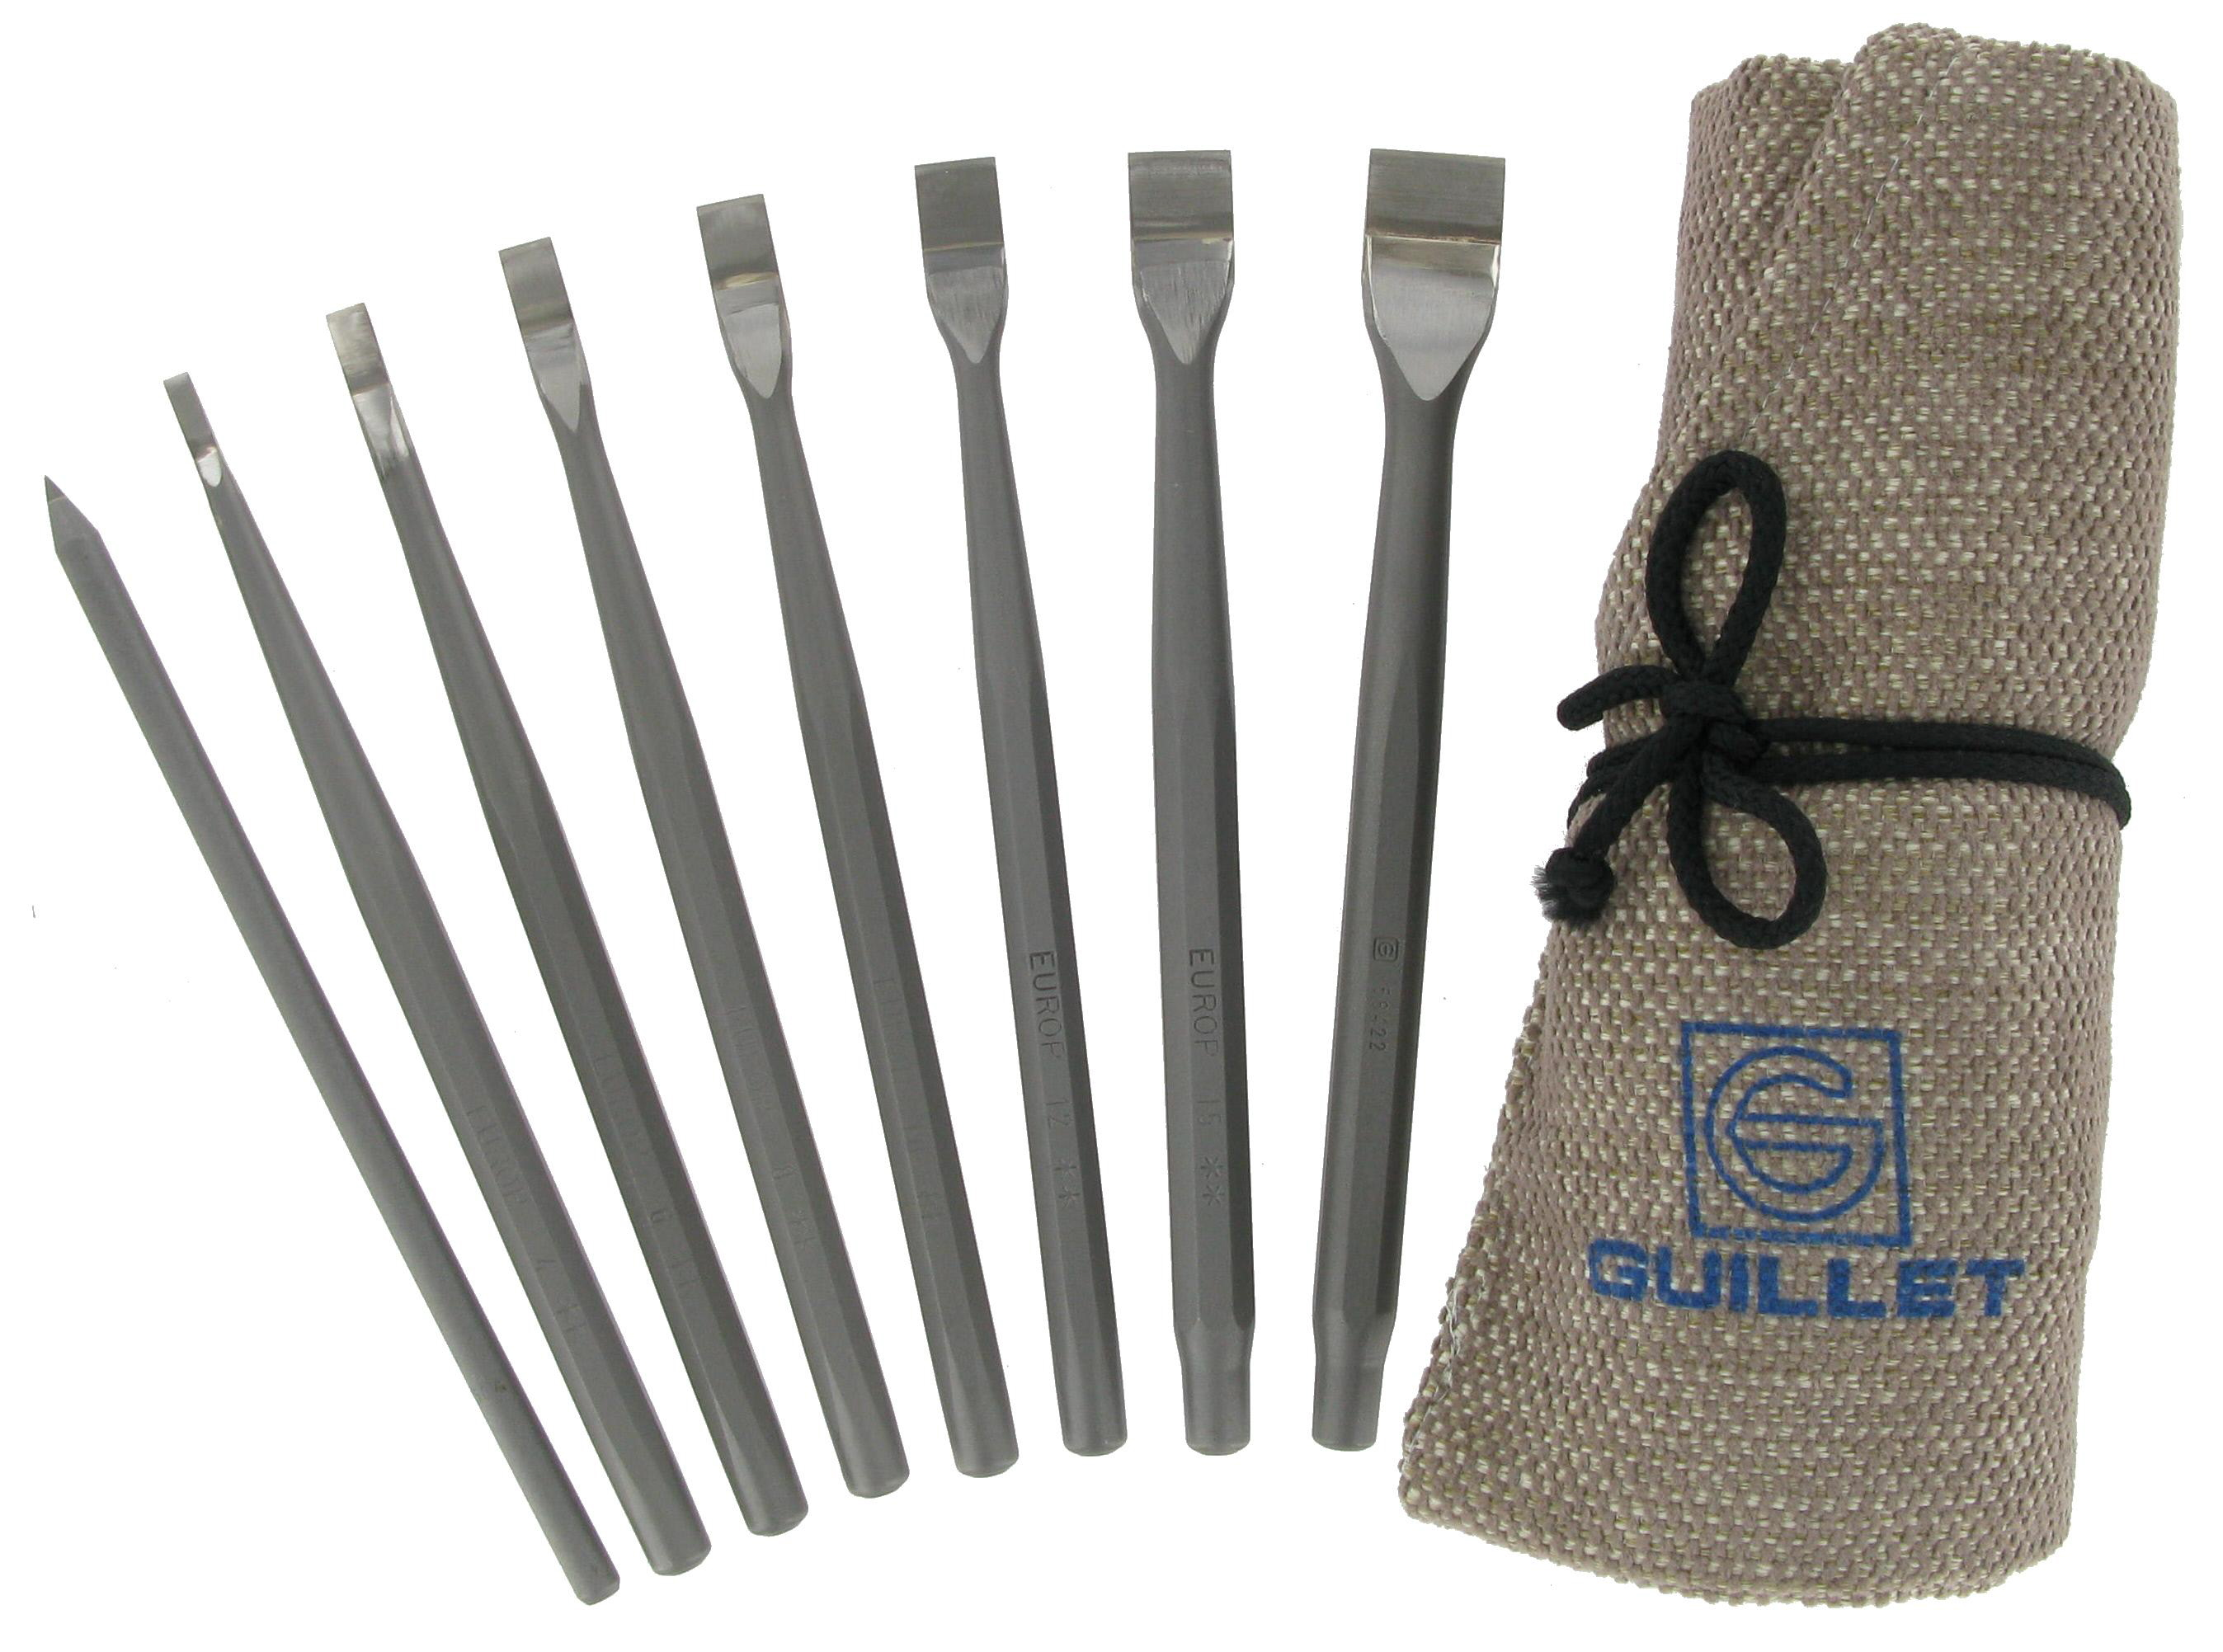 Guillet Europ Chisel Set for Marble And Stone 7+1 in Tool Roll